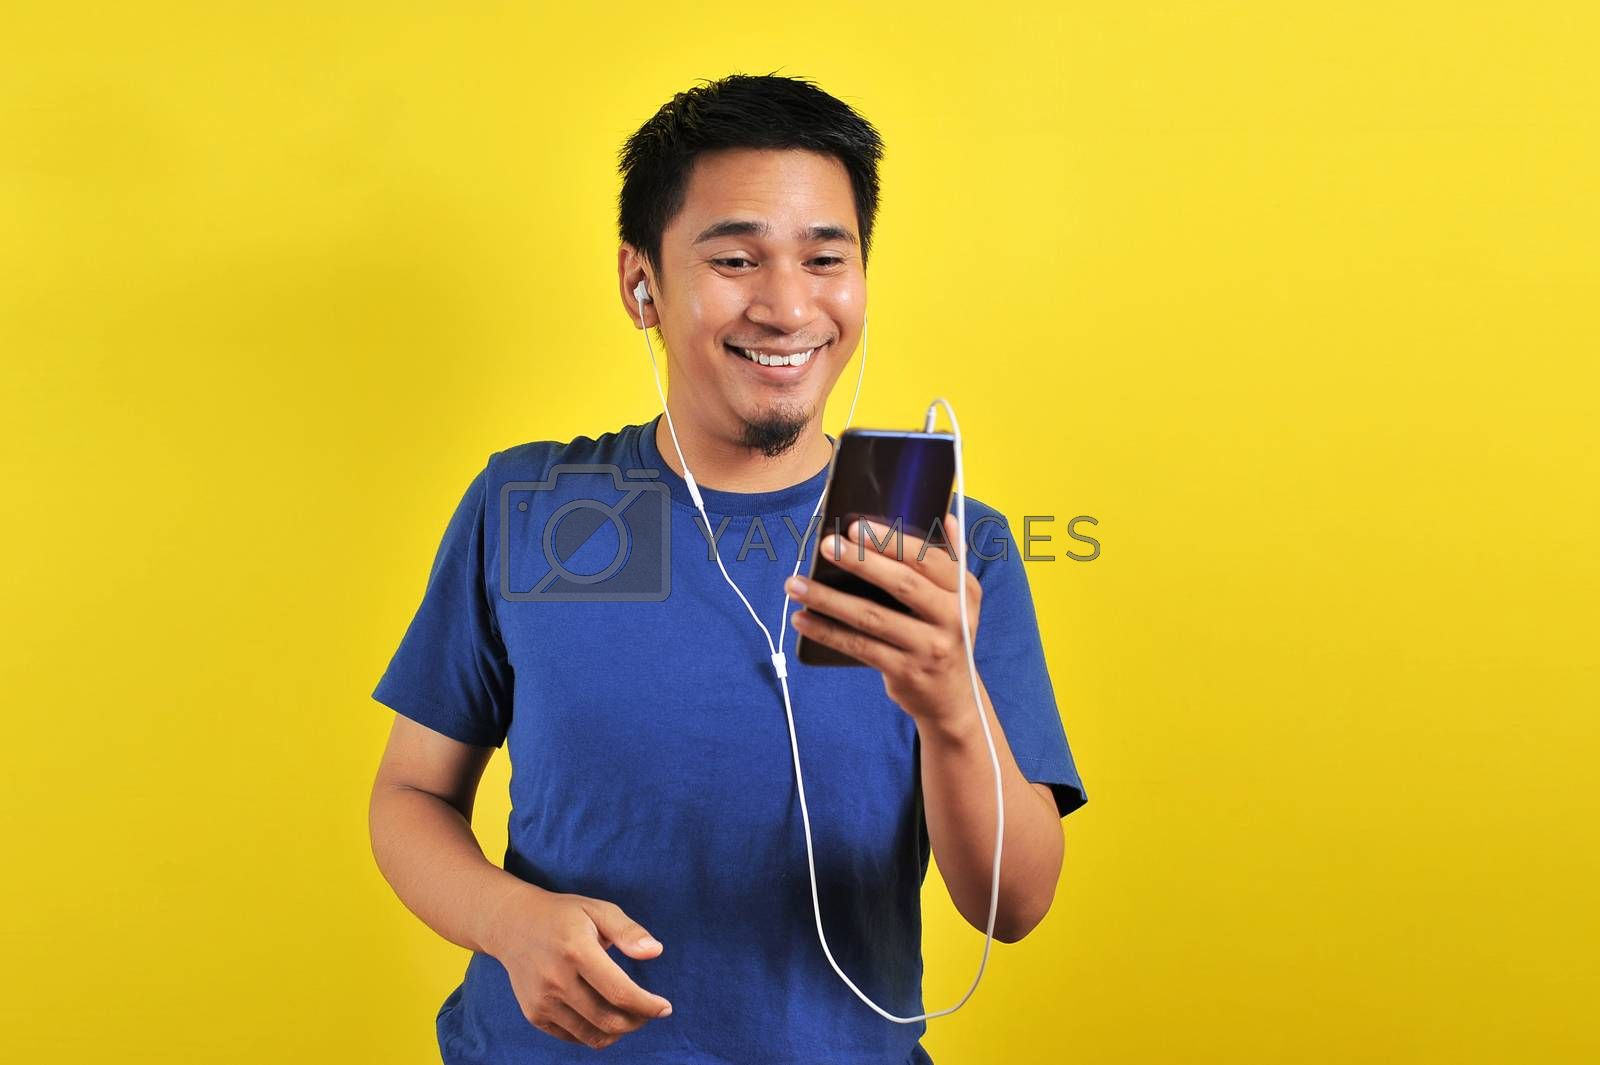 Asian man in casual blue t-shirt happy wearing headset listening to music from smartphone, isolated on yellow background.